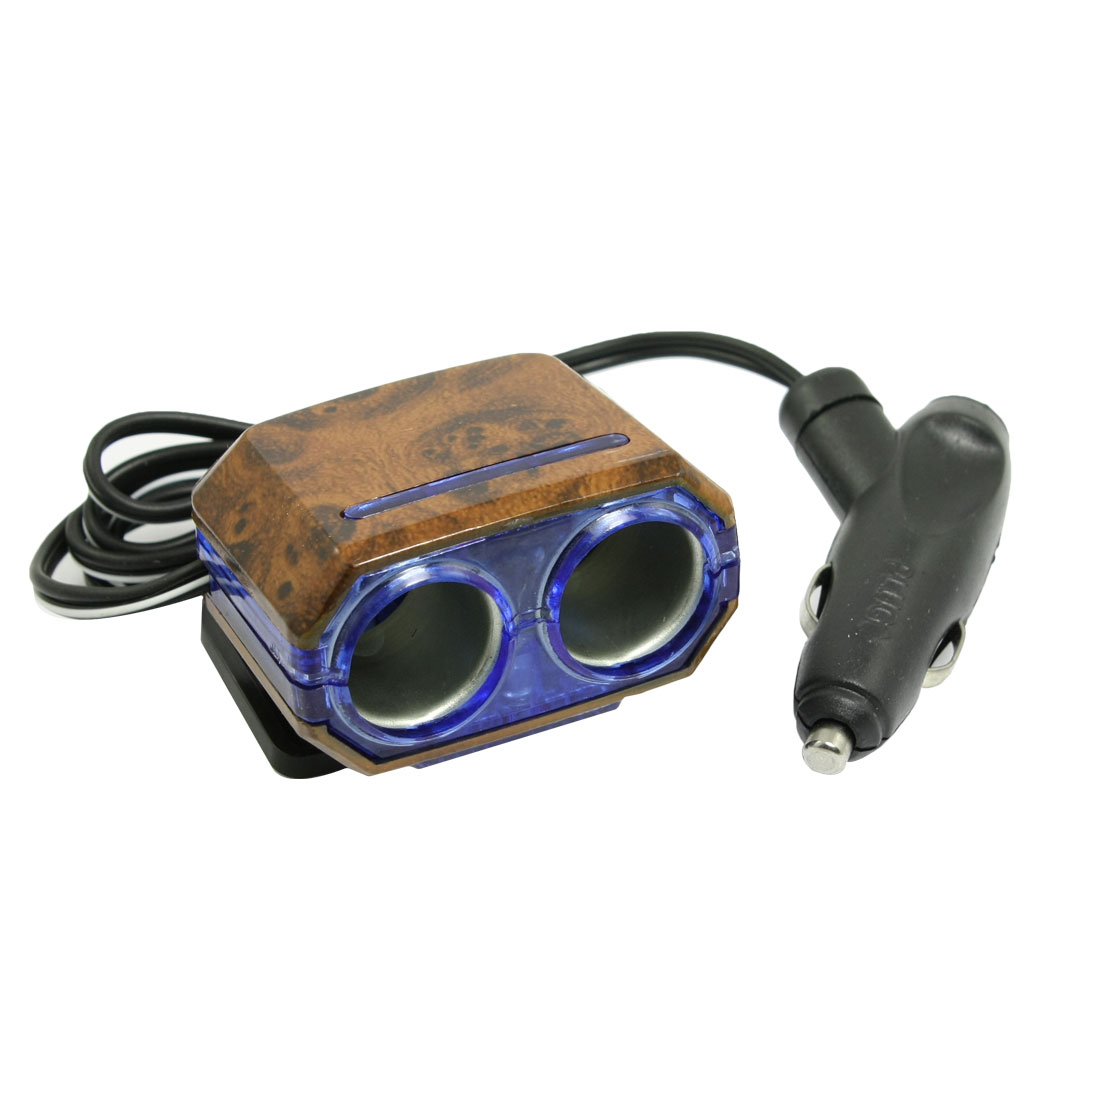 DC 12V 2 Way Socket Car Cigarette Lighter Charger Adapter Wood Pattern